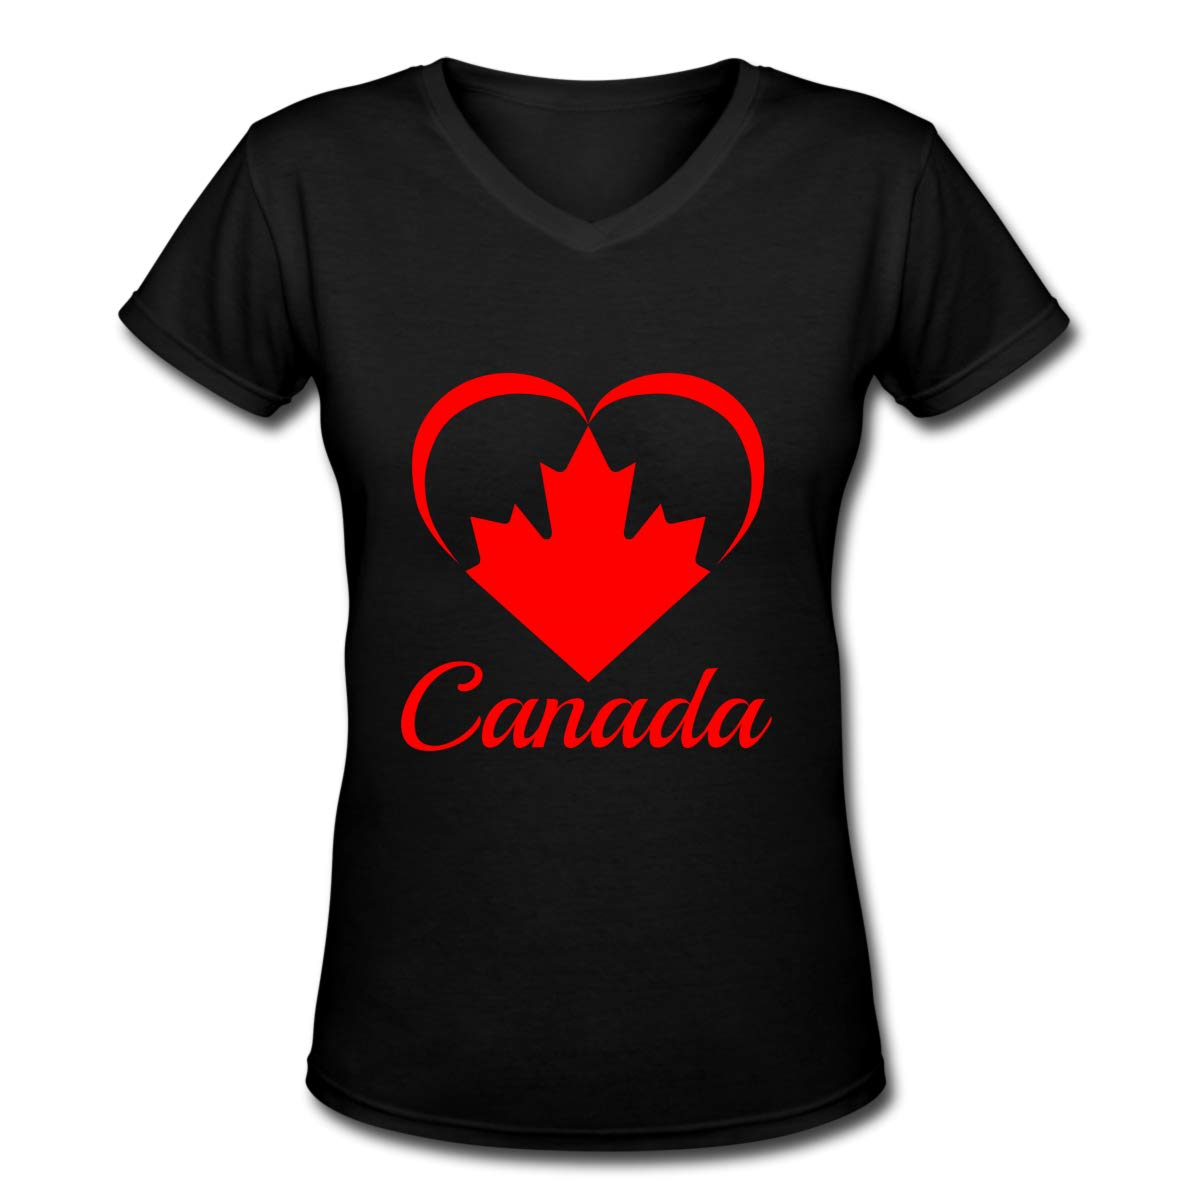 Canada text Ladies T-Shirt